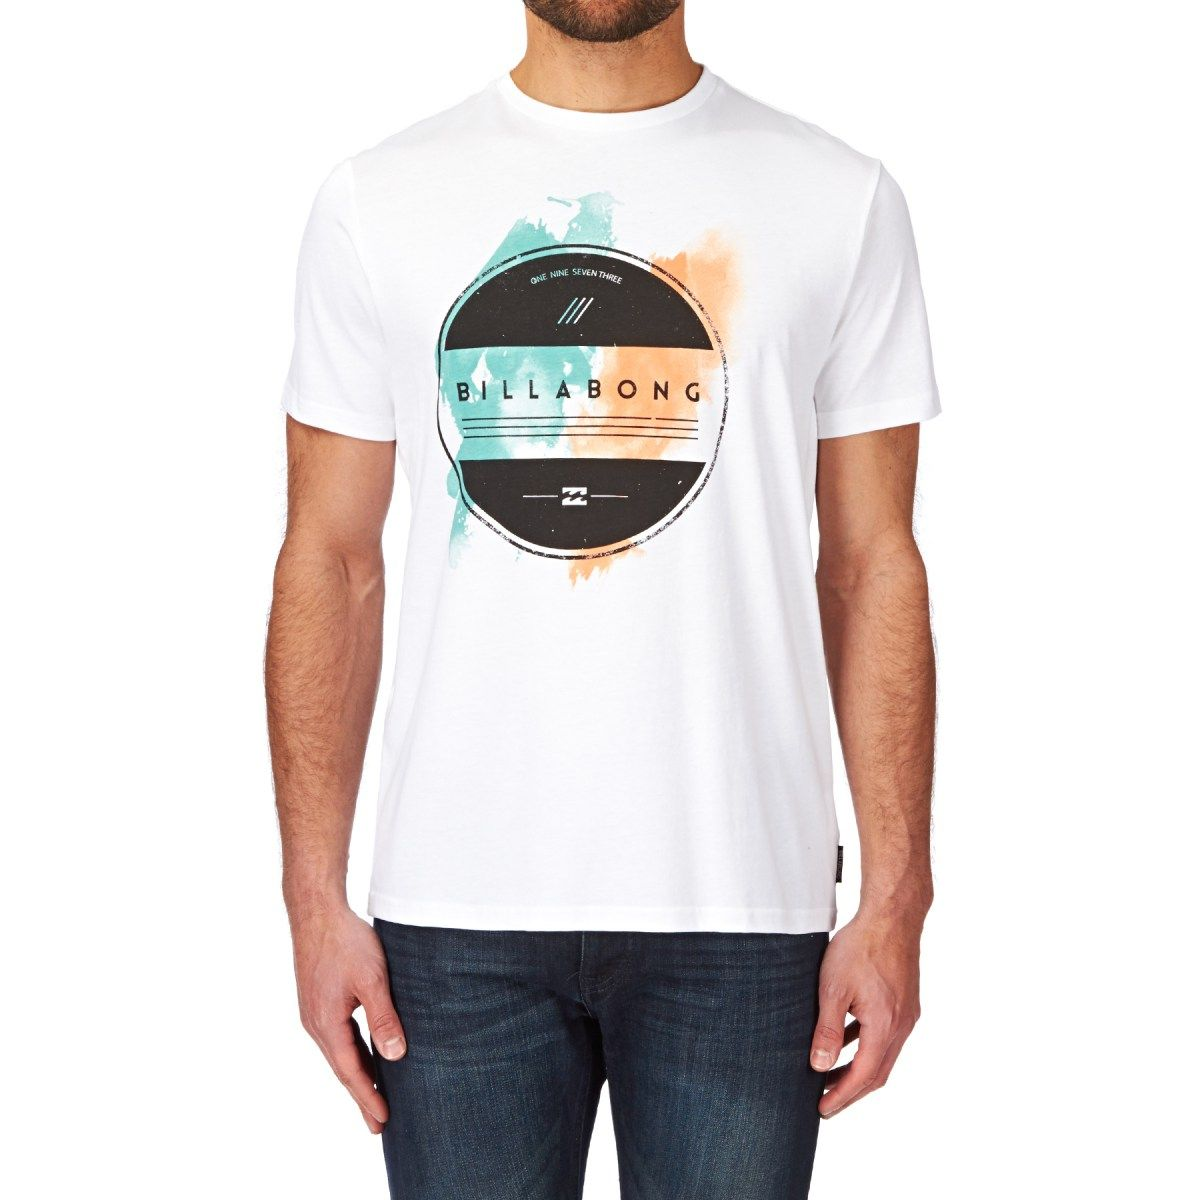 Men's Billabong T-shirts - Billabong Allusion T-shirt - White